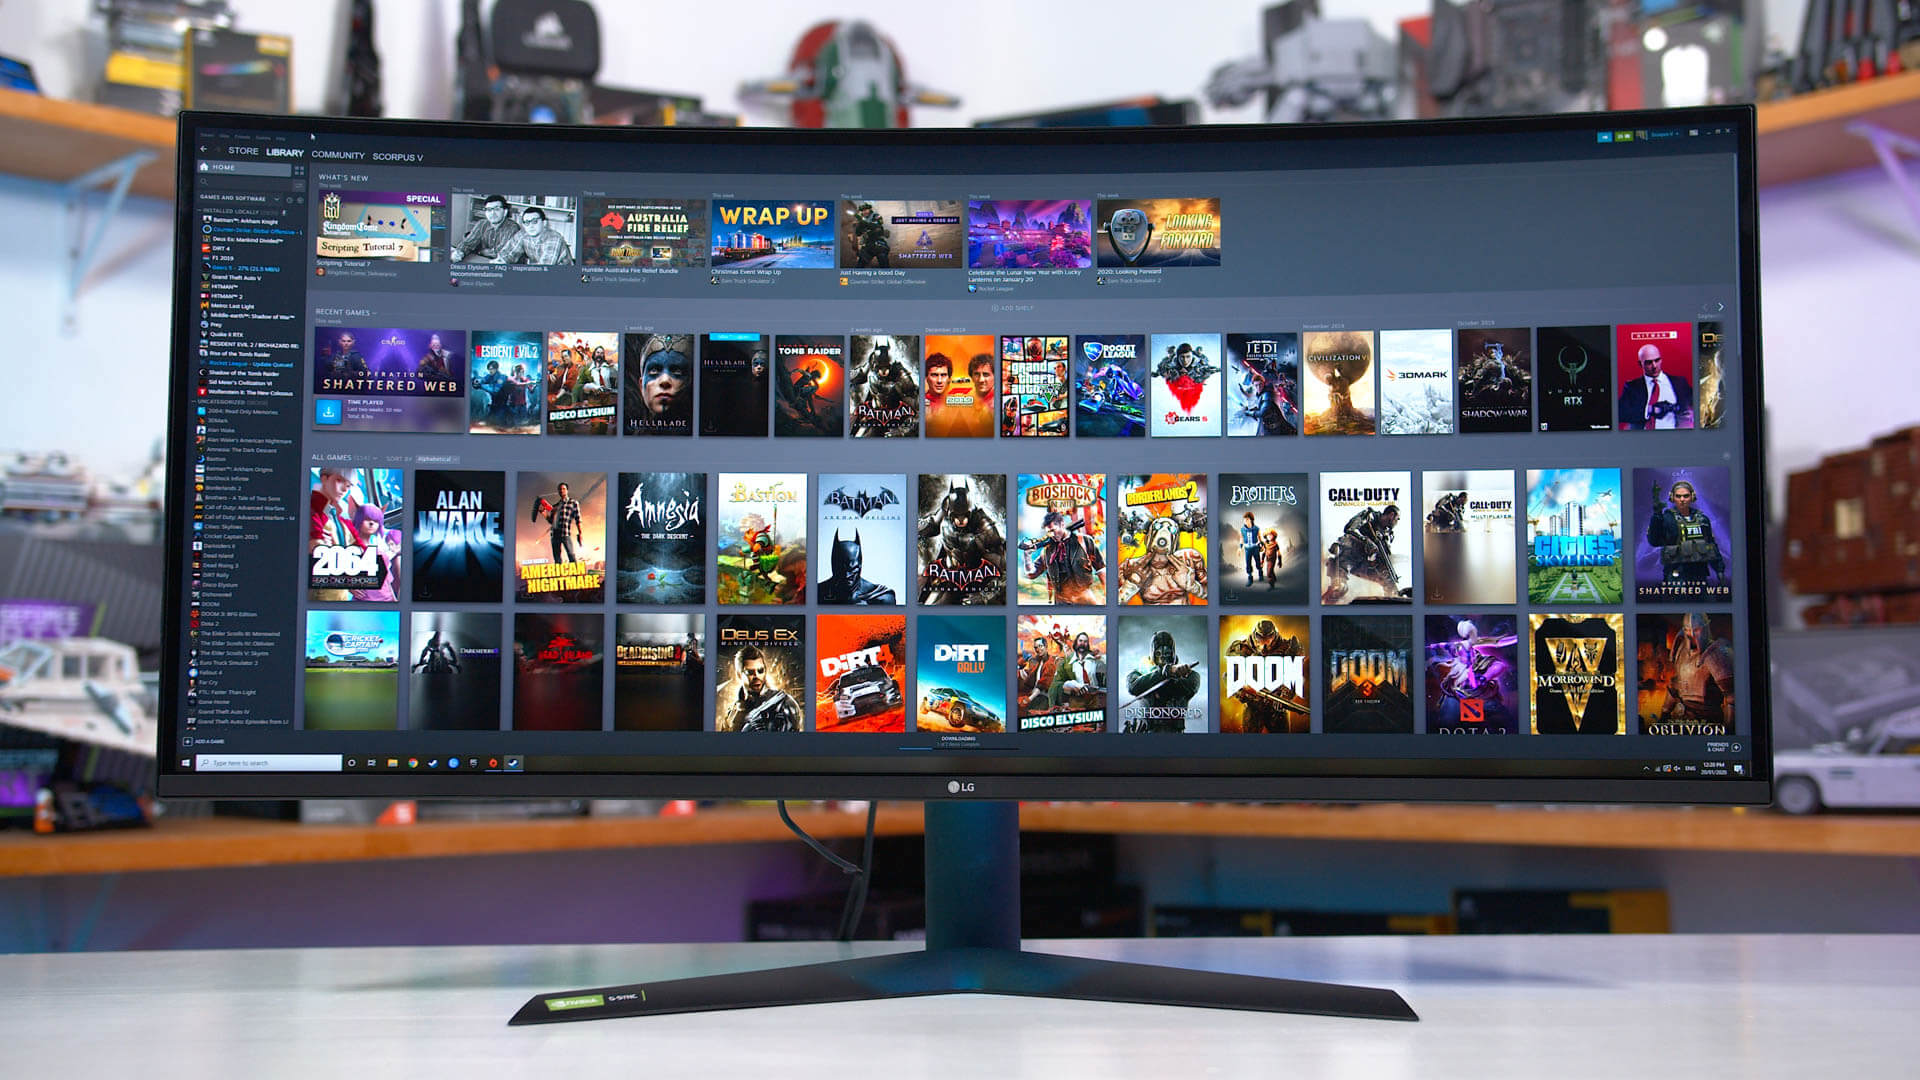 Display panel shortages could lead to price hikes, low stock